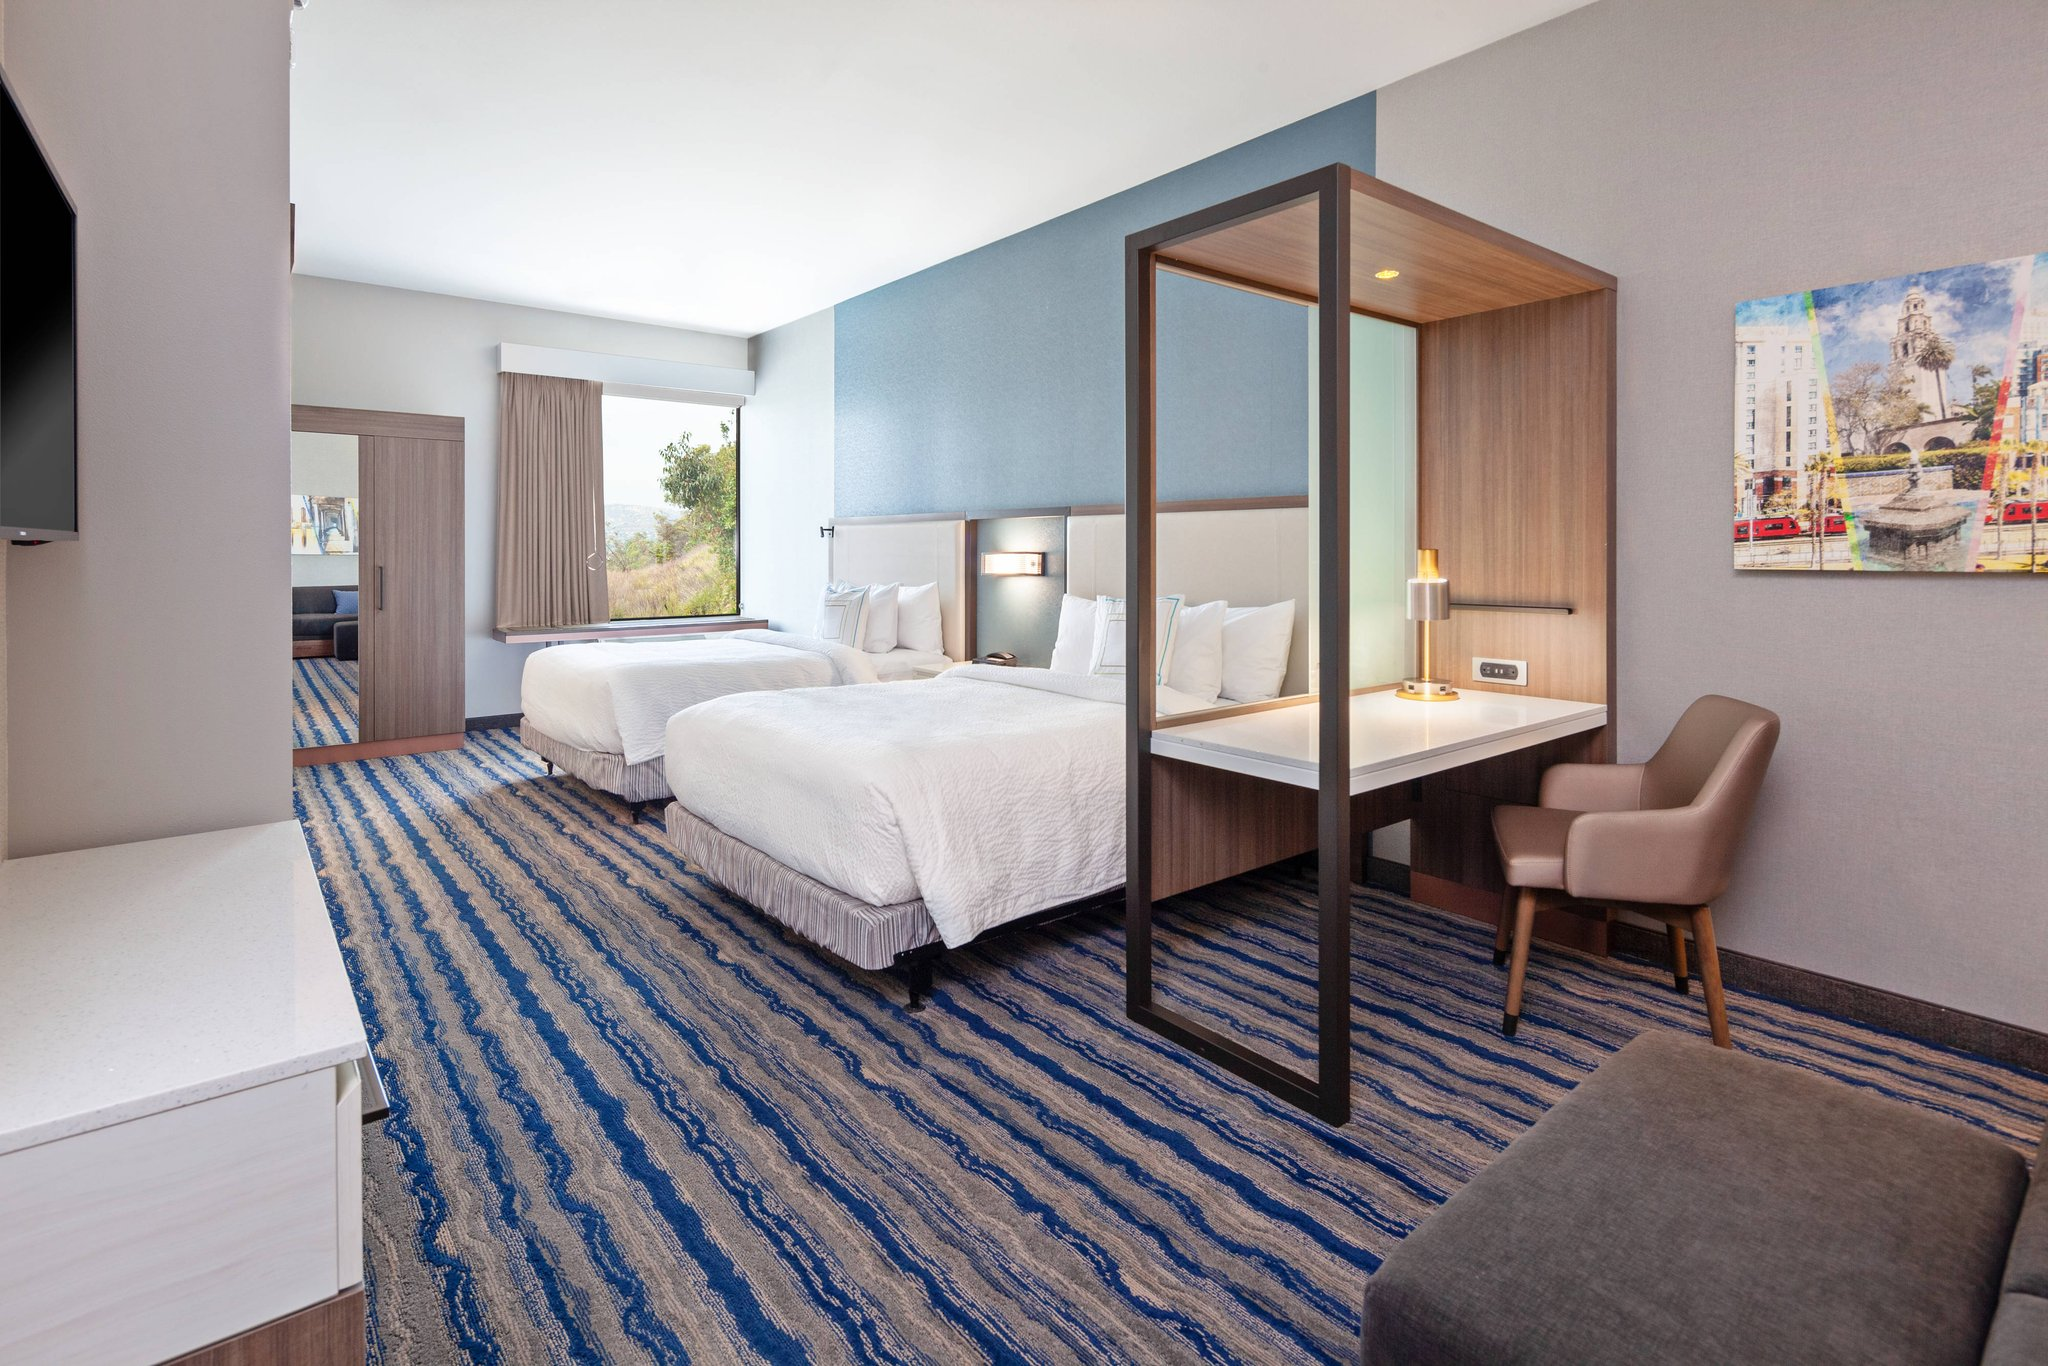 A contemporary double bed room with seating area and desk at Springhill Suites Escondido near San Diego Safari Park.